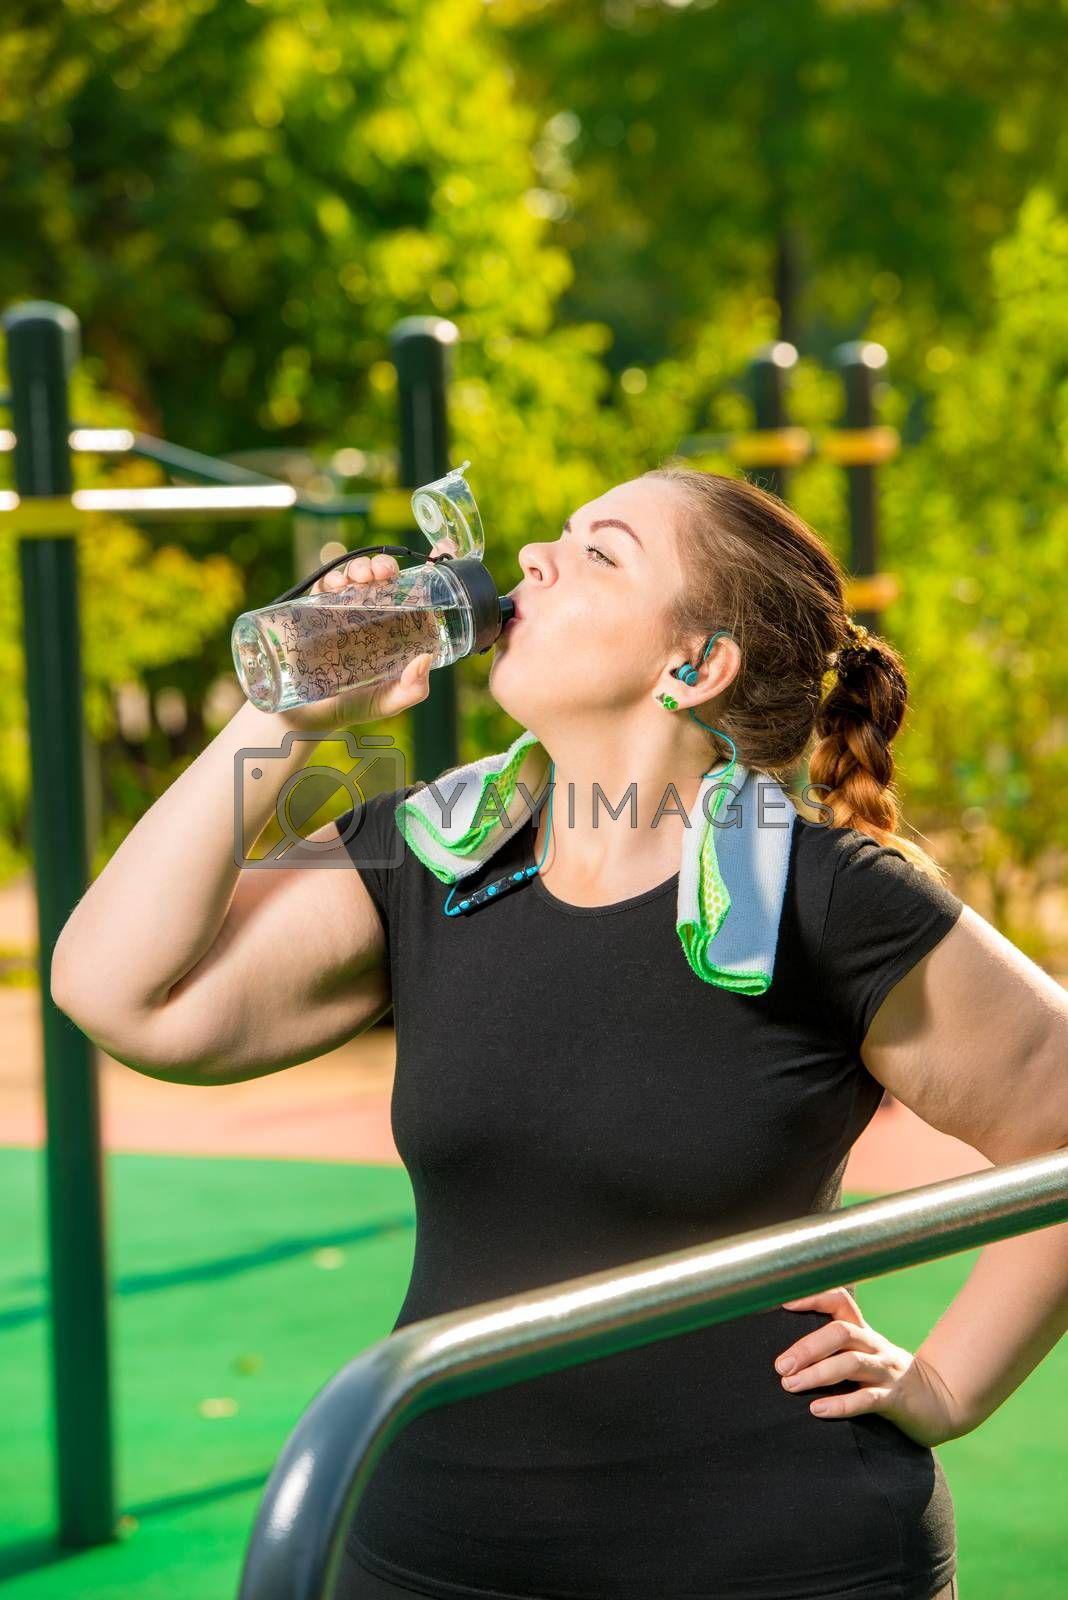 plus size girl drinks clean water from a bottle after sports act by Labunskiy K.